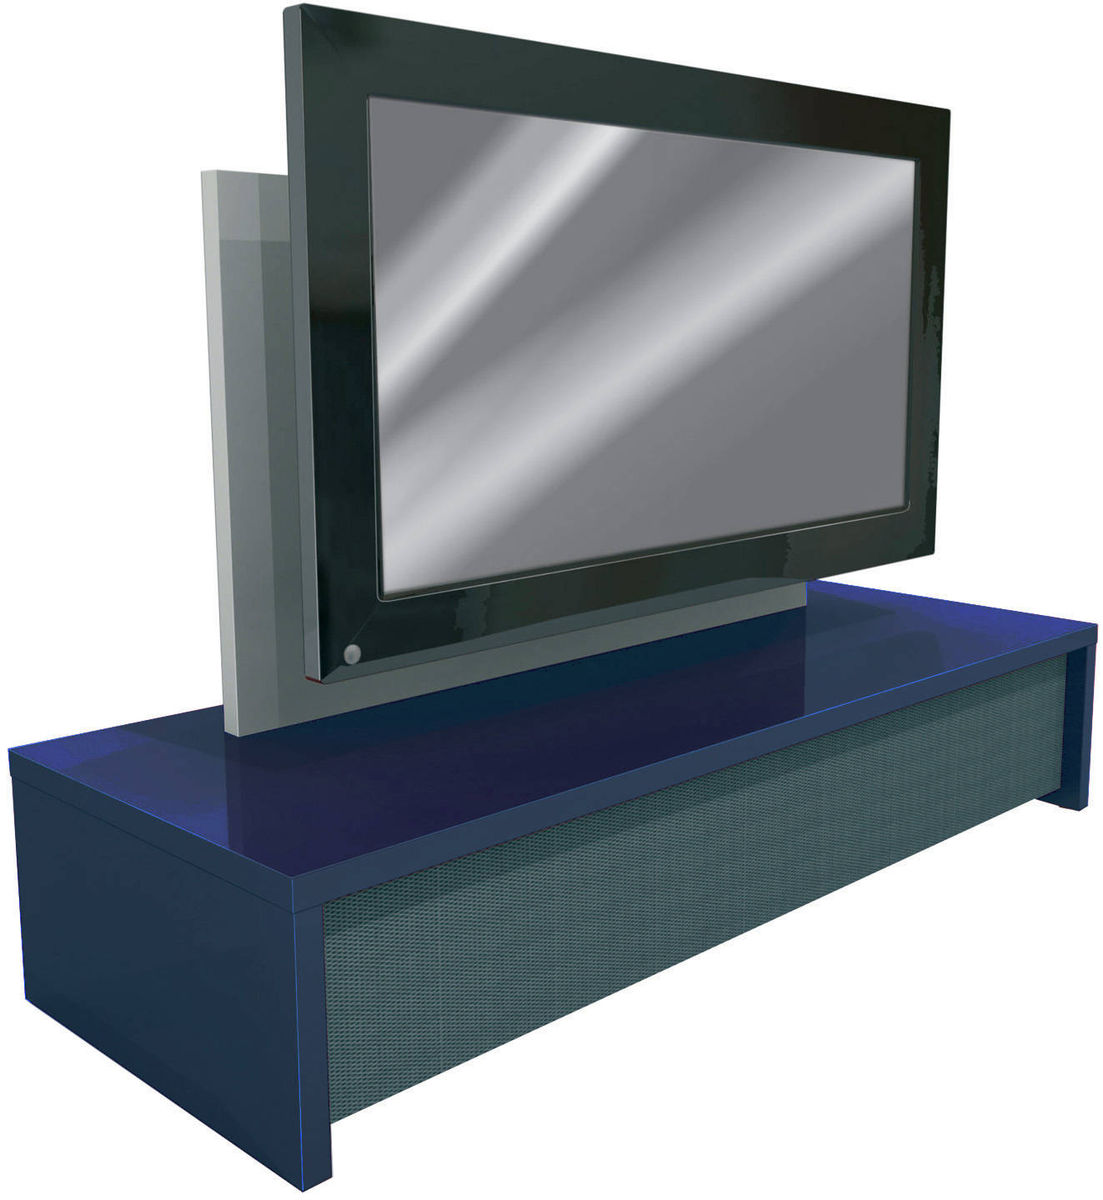 Table television ecran plat for Meuble televiseur ecran plat